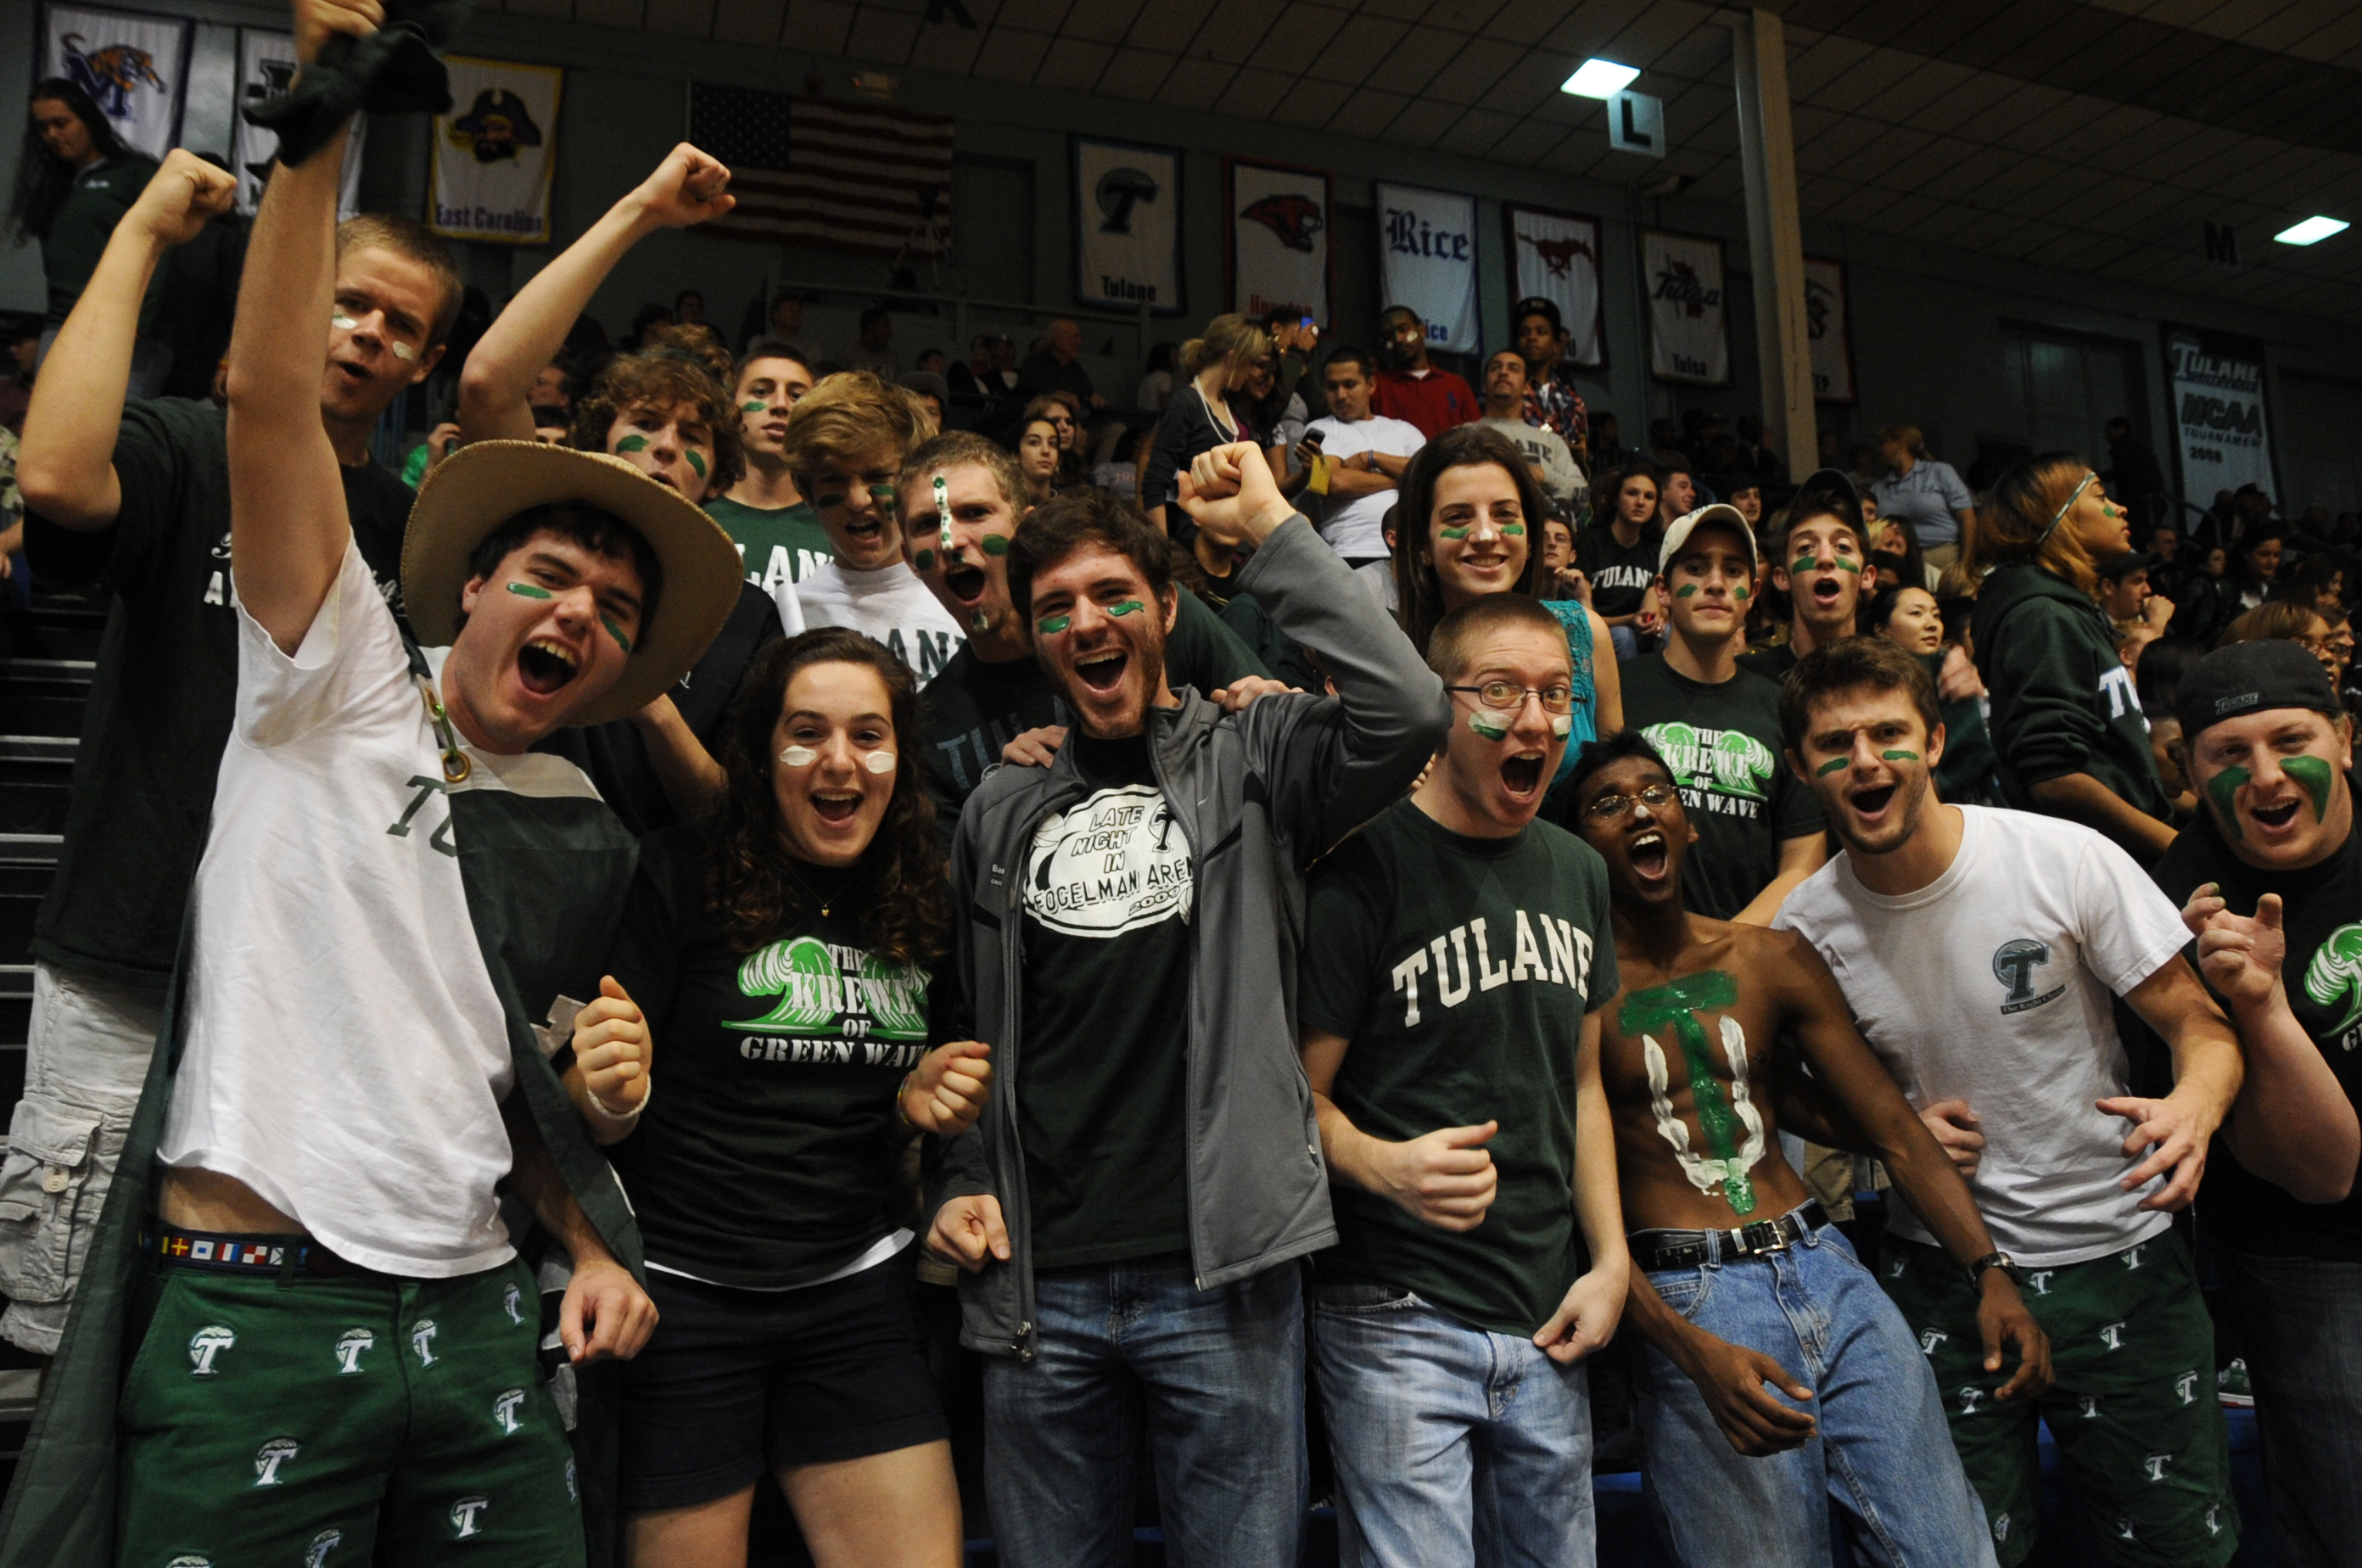 By Tulane Public Relations (Basketball Fans Uploaded by AlbertHerring) [CC BY 2.0 (http://creativecommons.org/licenses/by/2.0)], via Wikimedia Commons